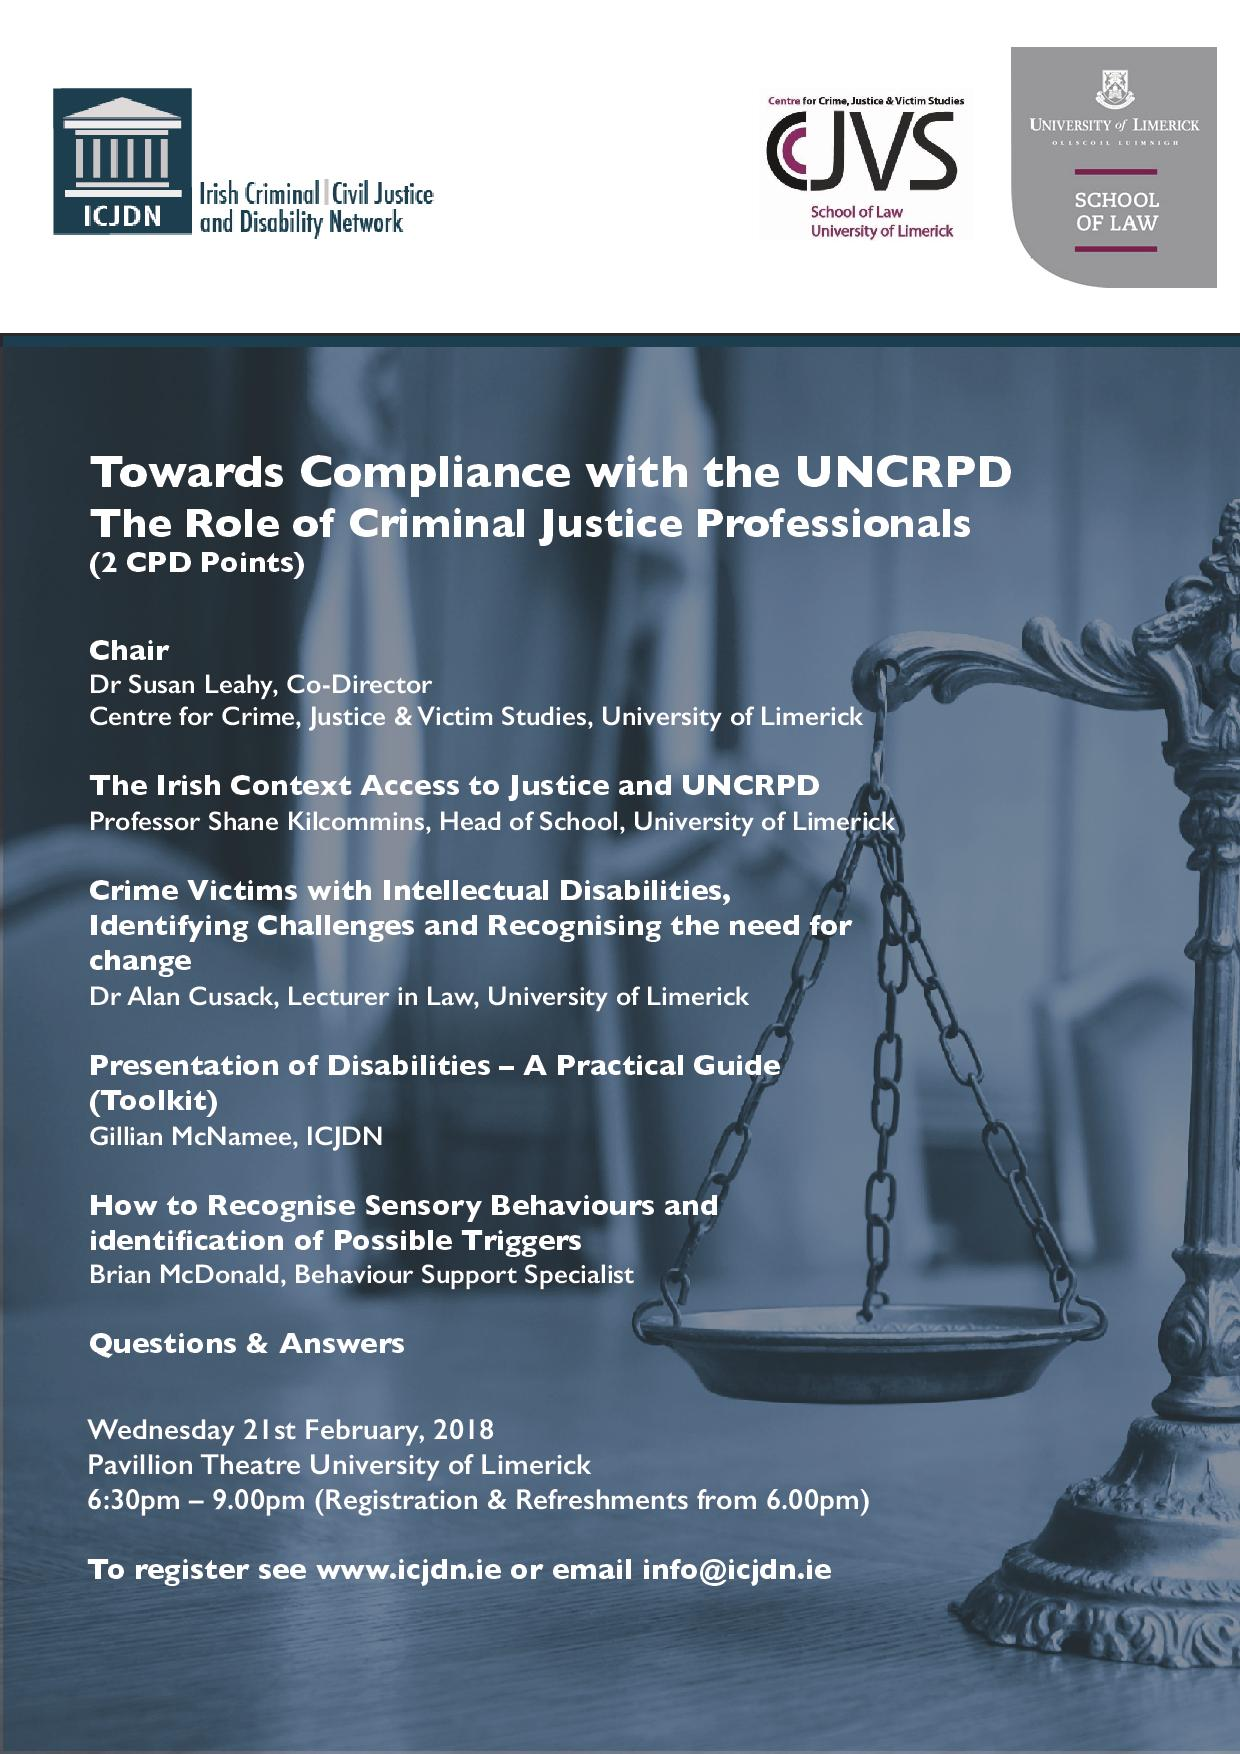 Towards Compliance with the UNCRPD